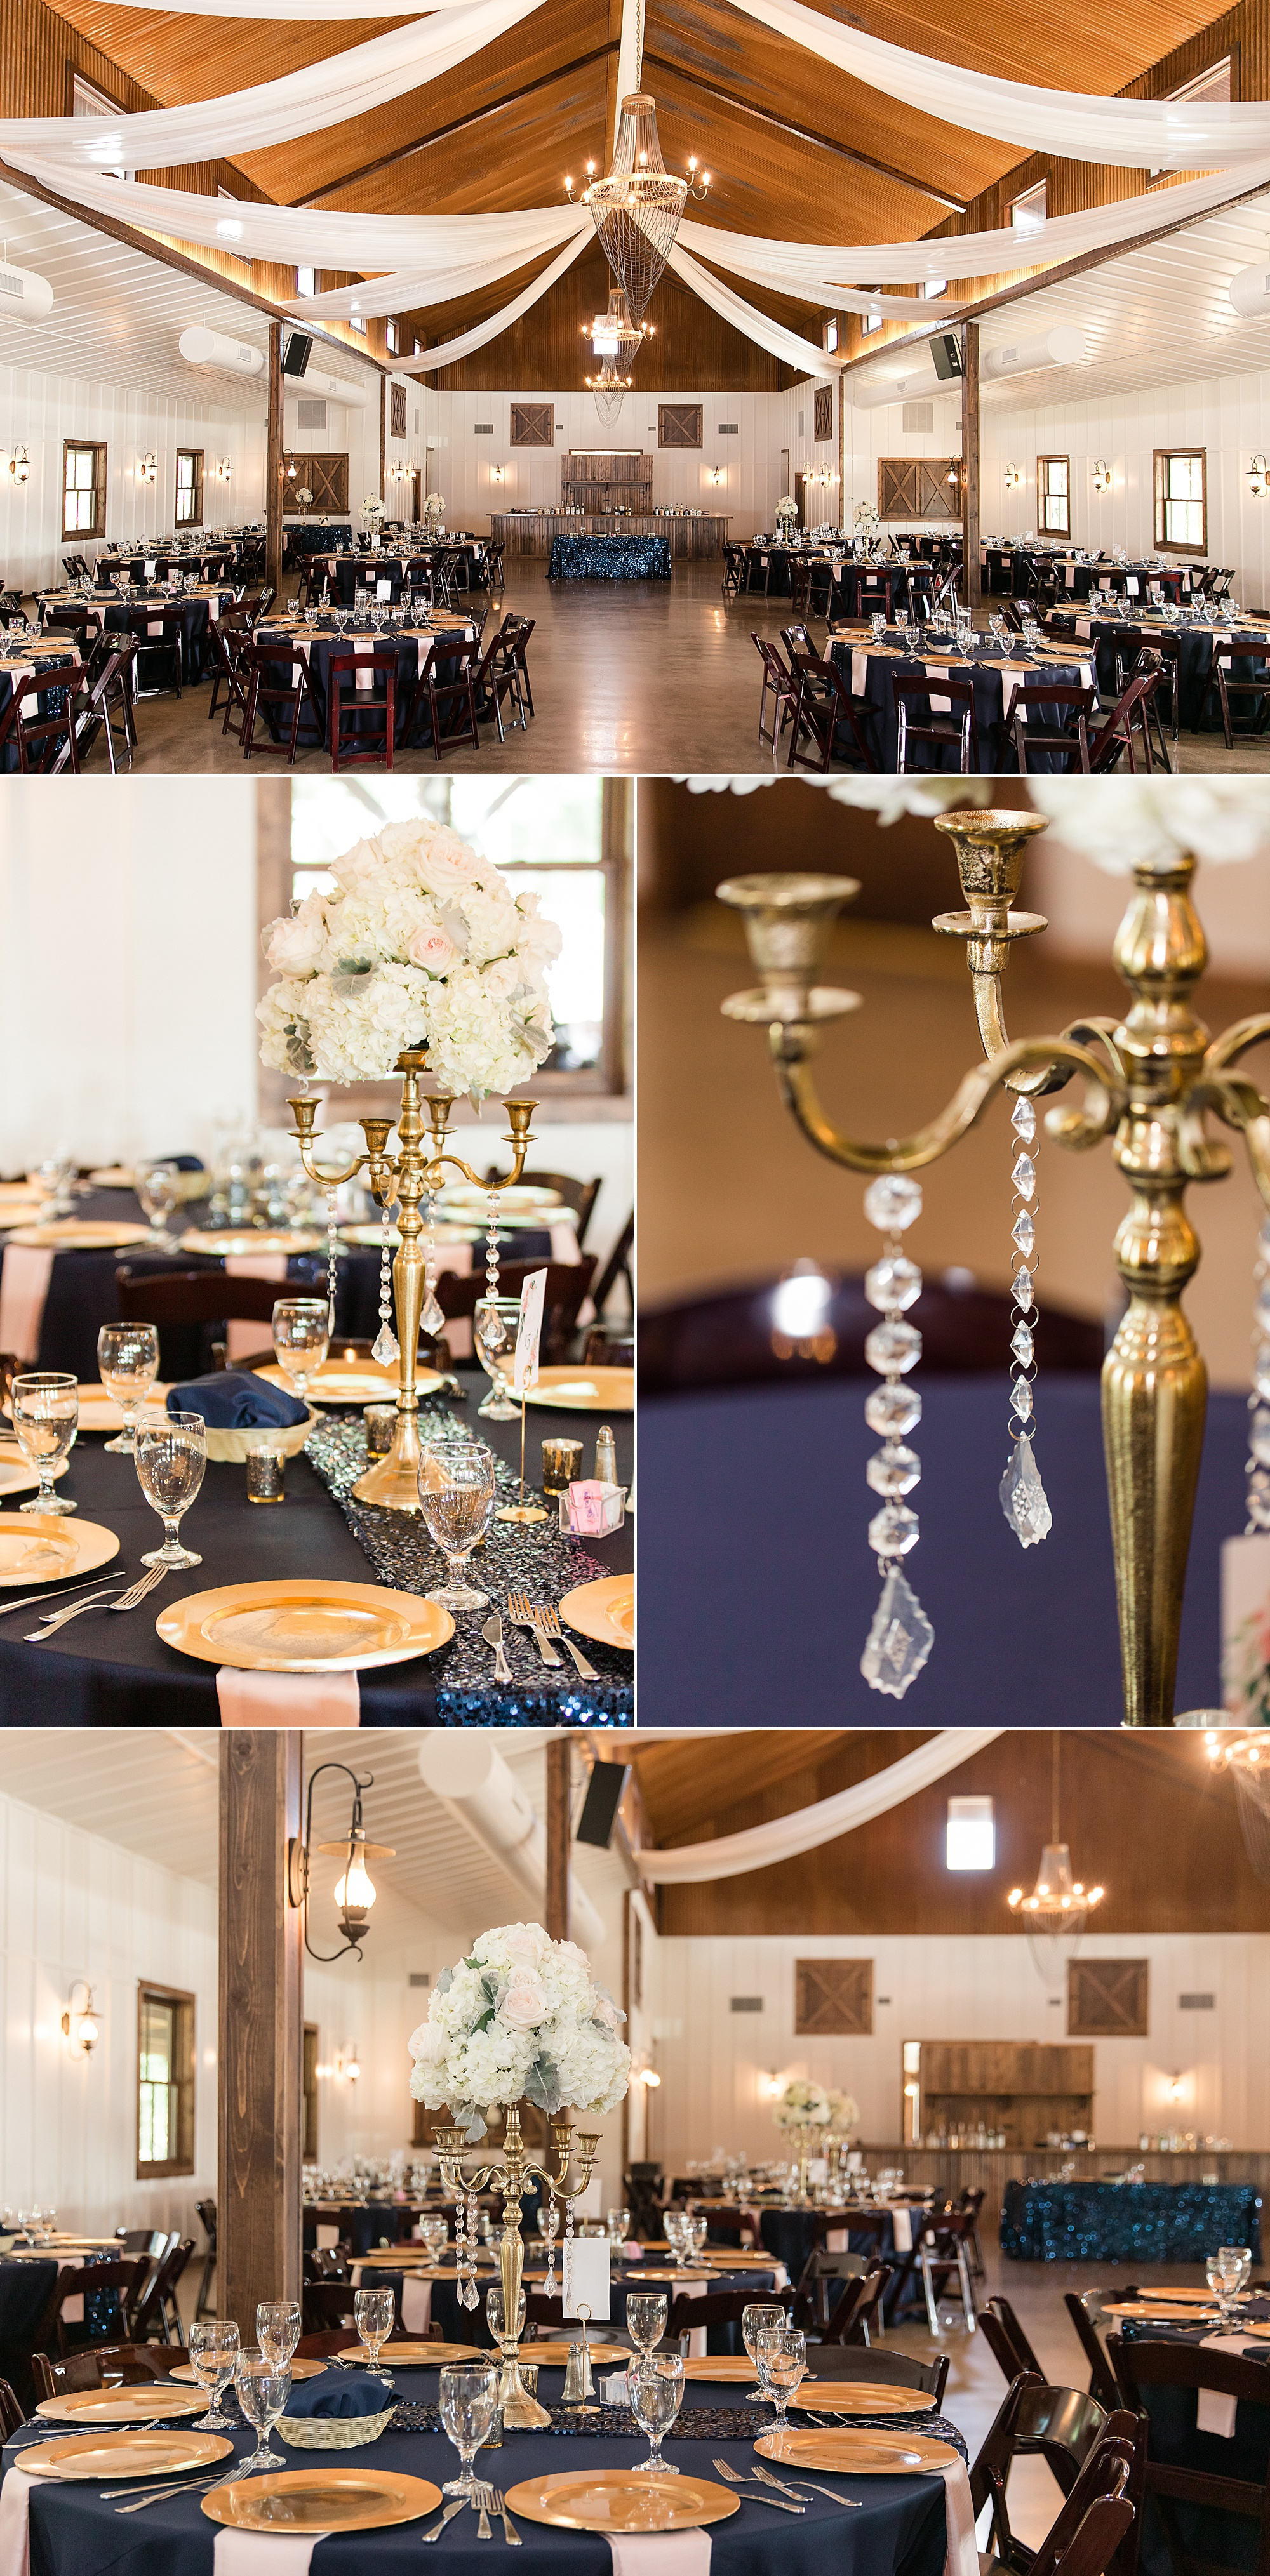 Wedding-Photographer-Bulverde-Texas-Western-Sky-Event-Venue-Carly-Barton-Photography_0013.jpg